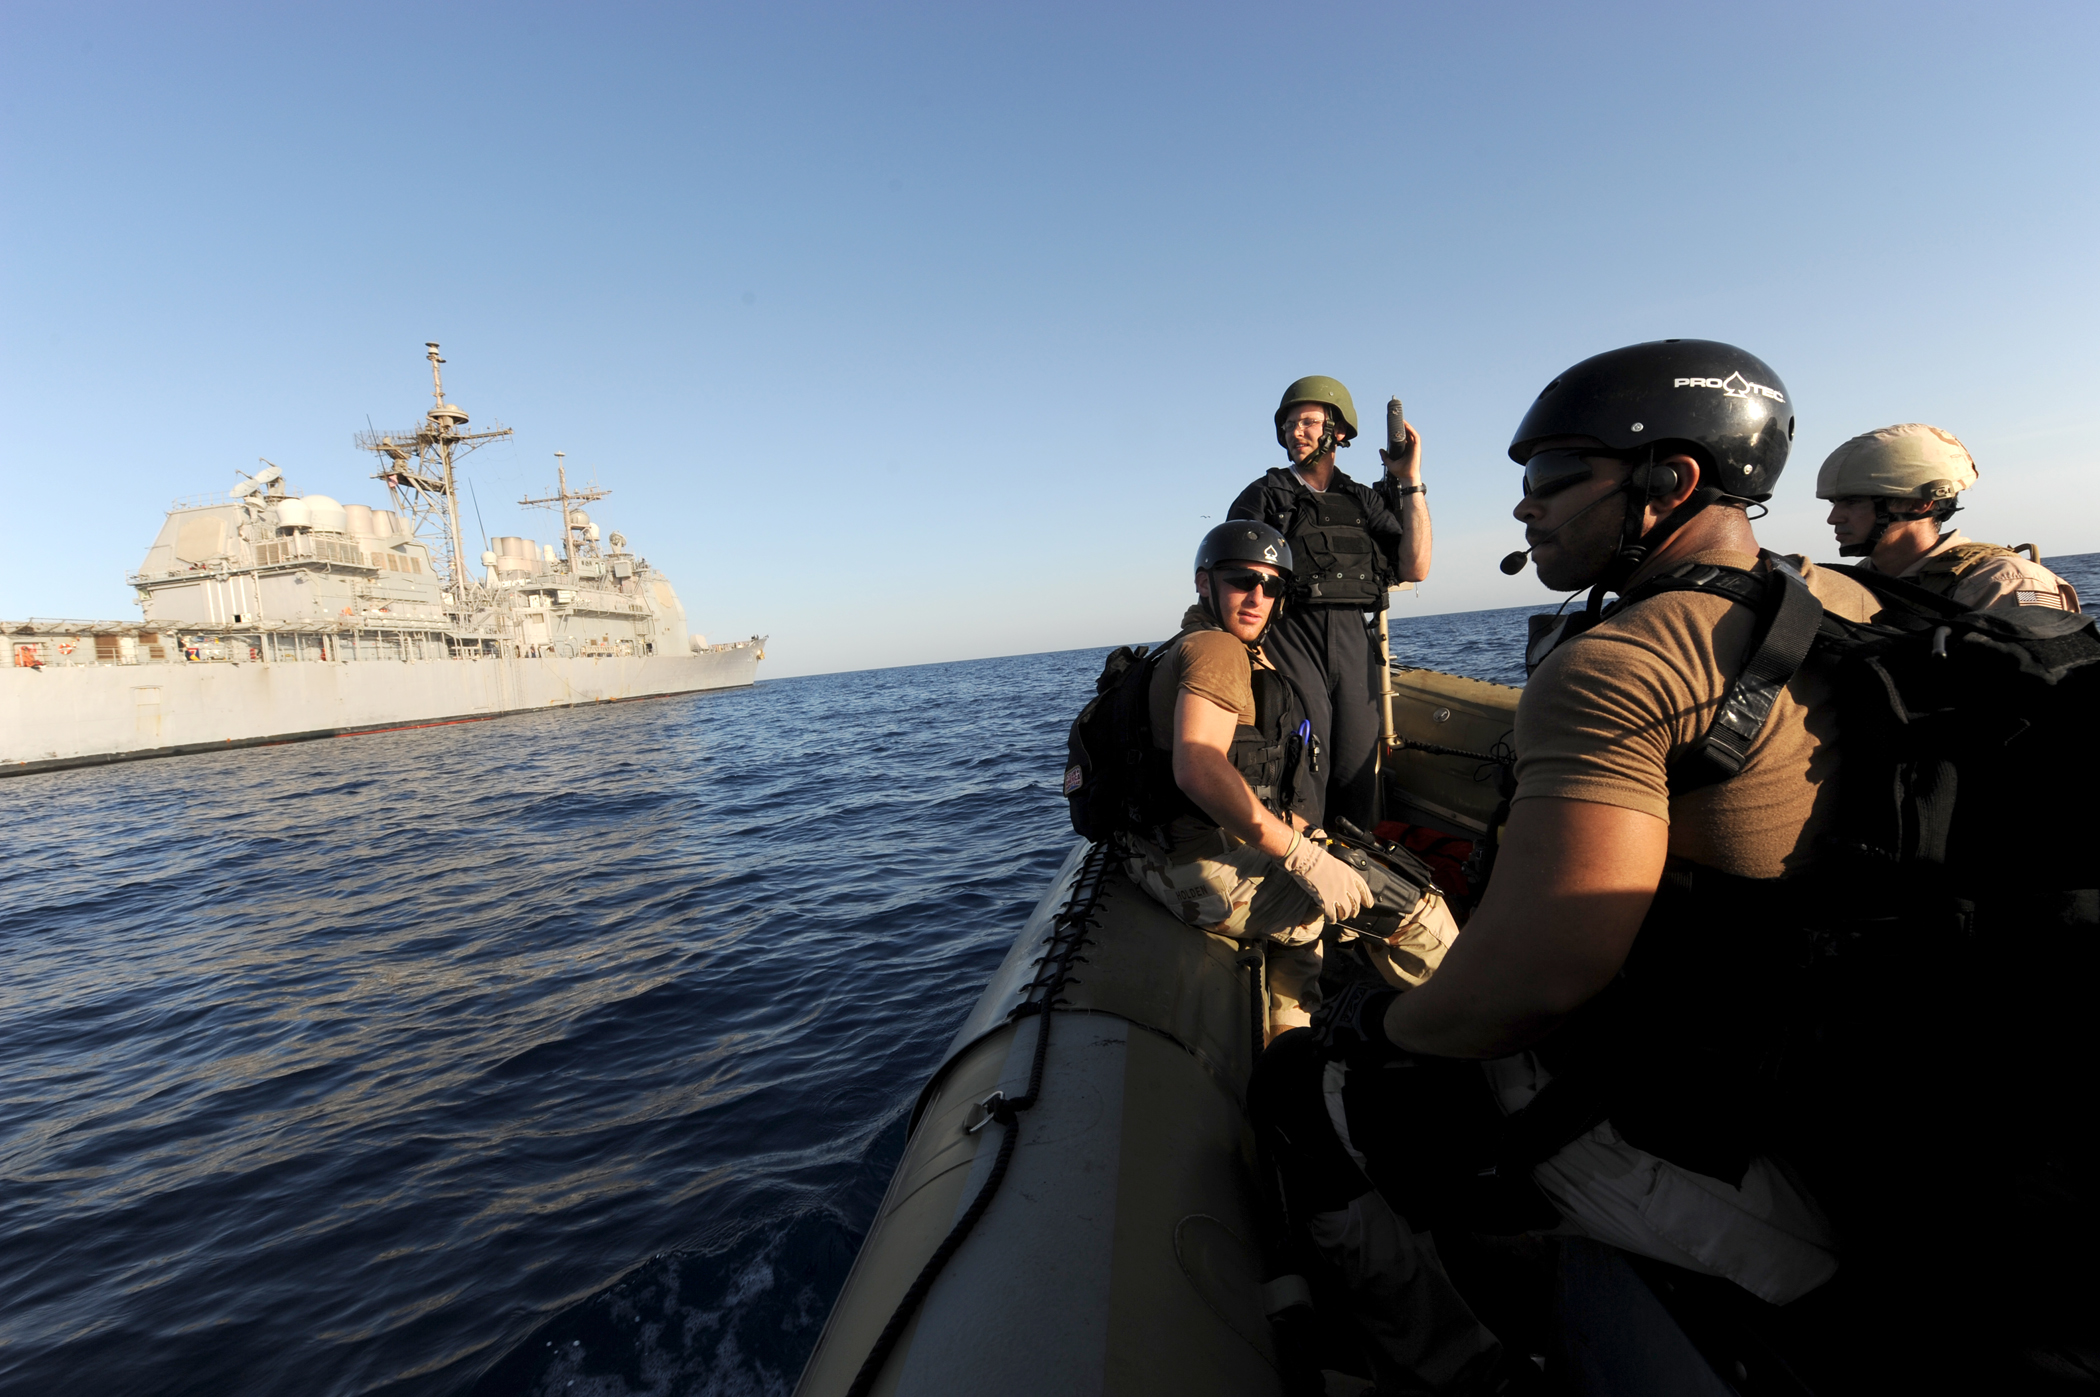 Anti-Piracy: Seastead Foreign Policy